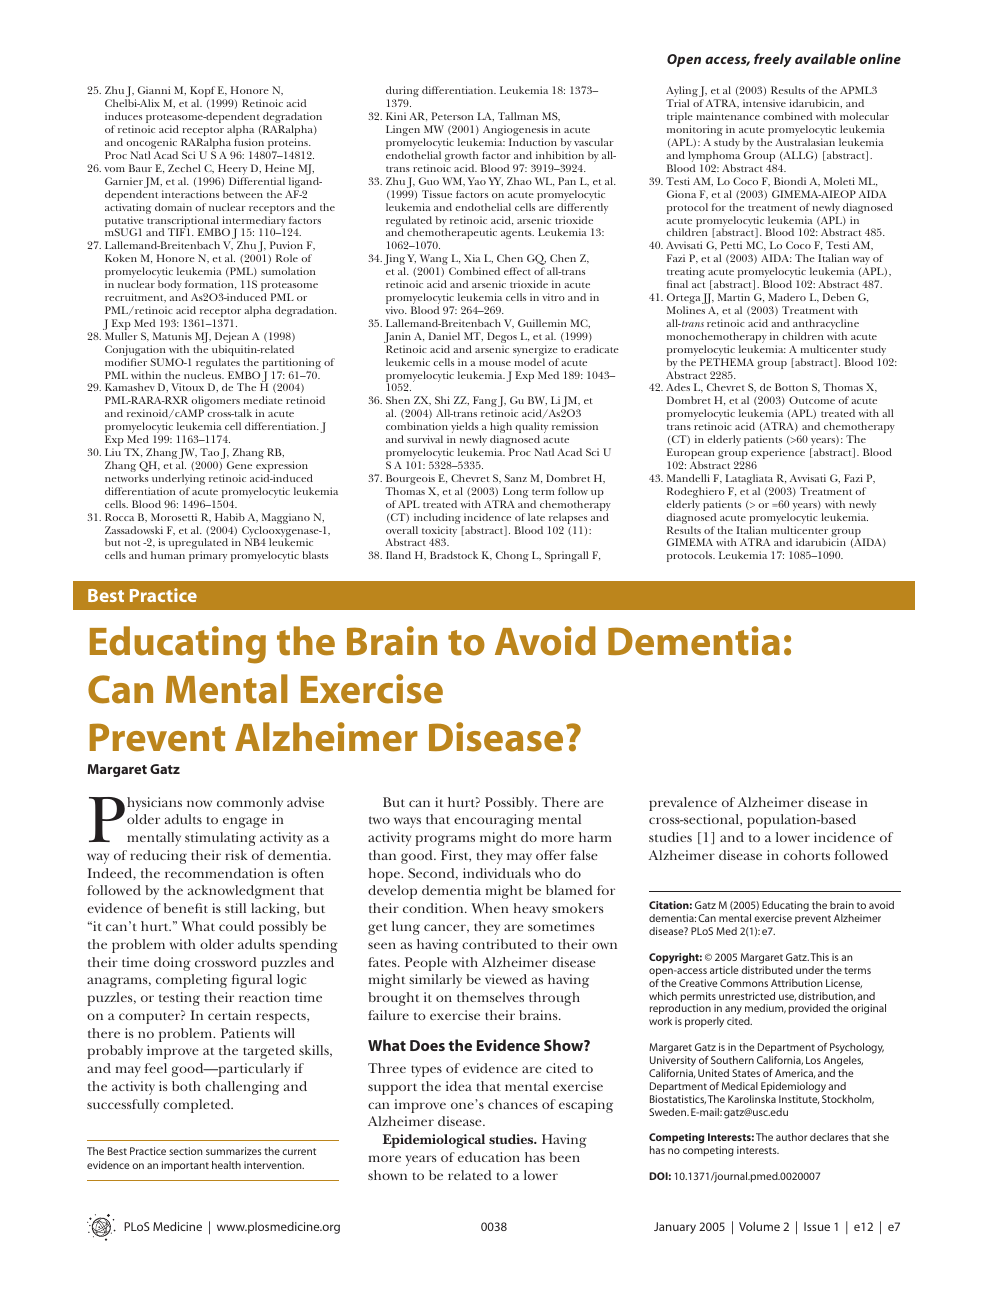 010 Alzheimers Disease Research Paper Topics Stunning Alzheimer's Ideas Full